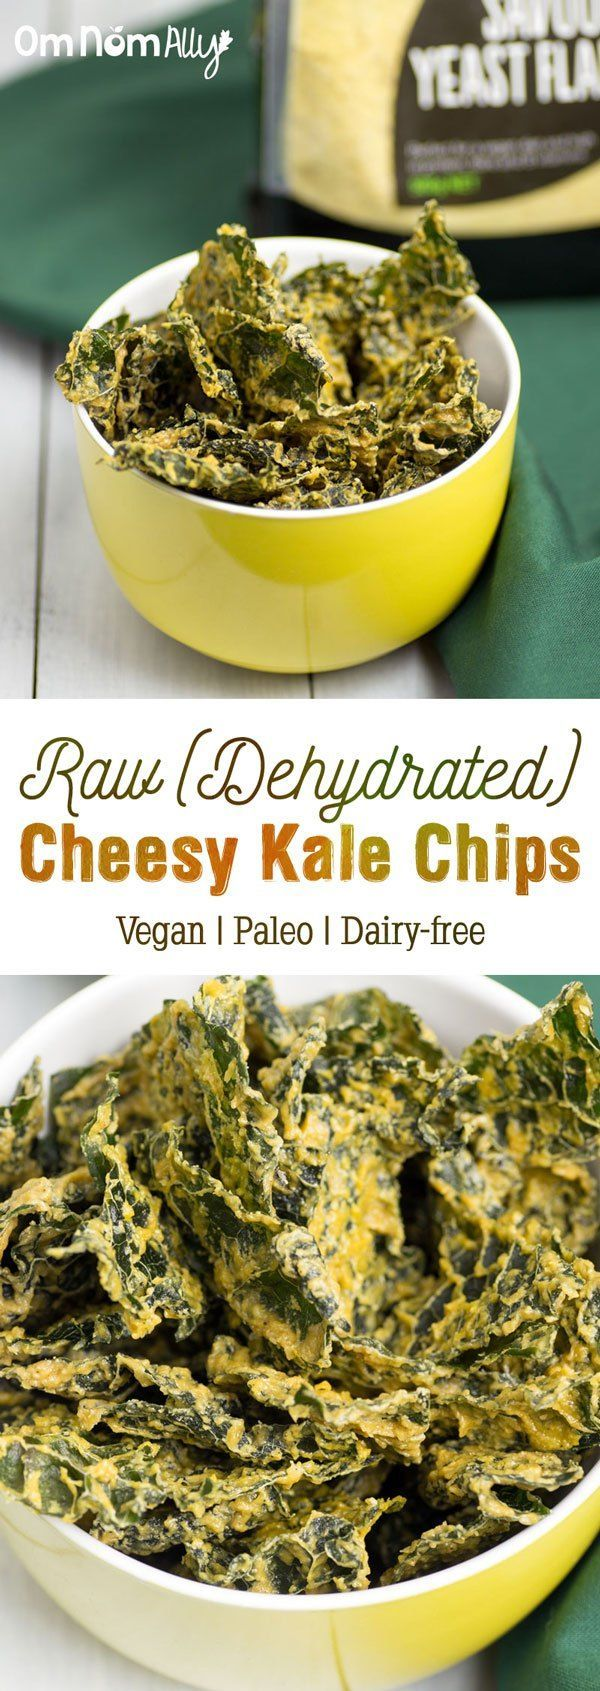 ... Cheesy Kale Chips on Pinterest | Kale Chips, Kale and Chips Recipe